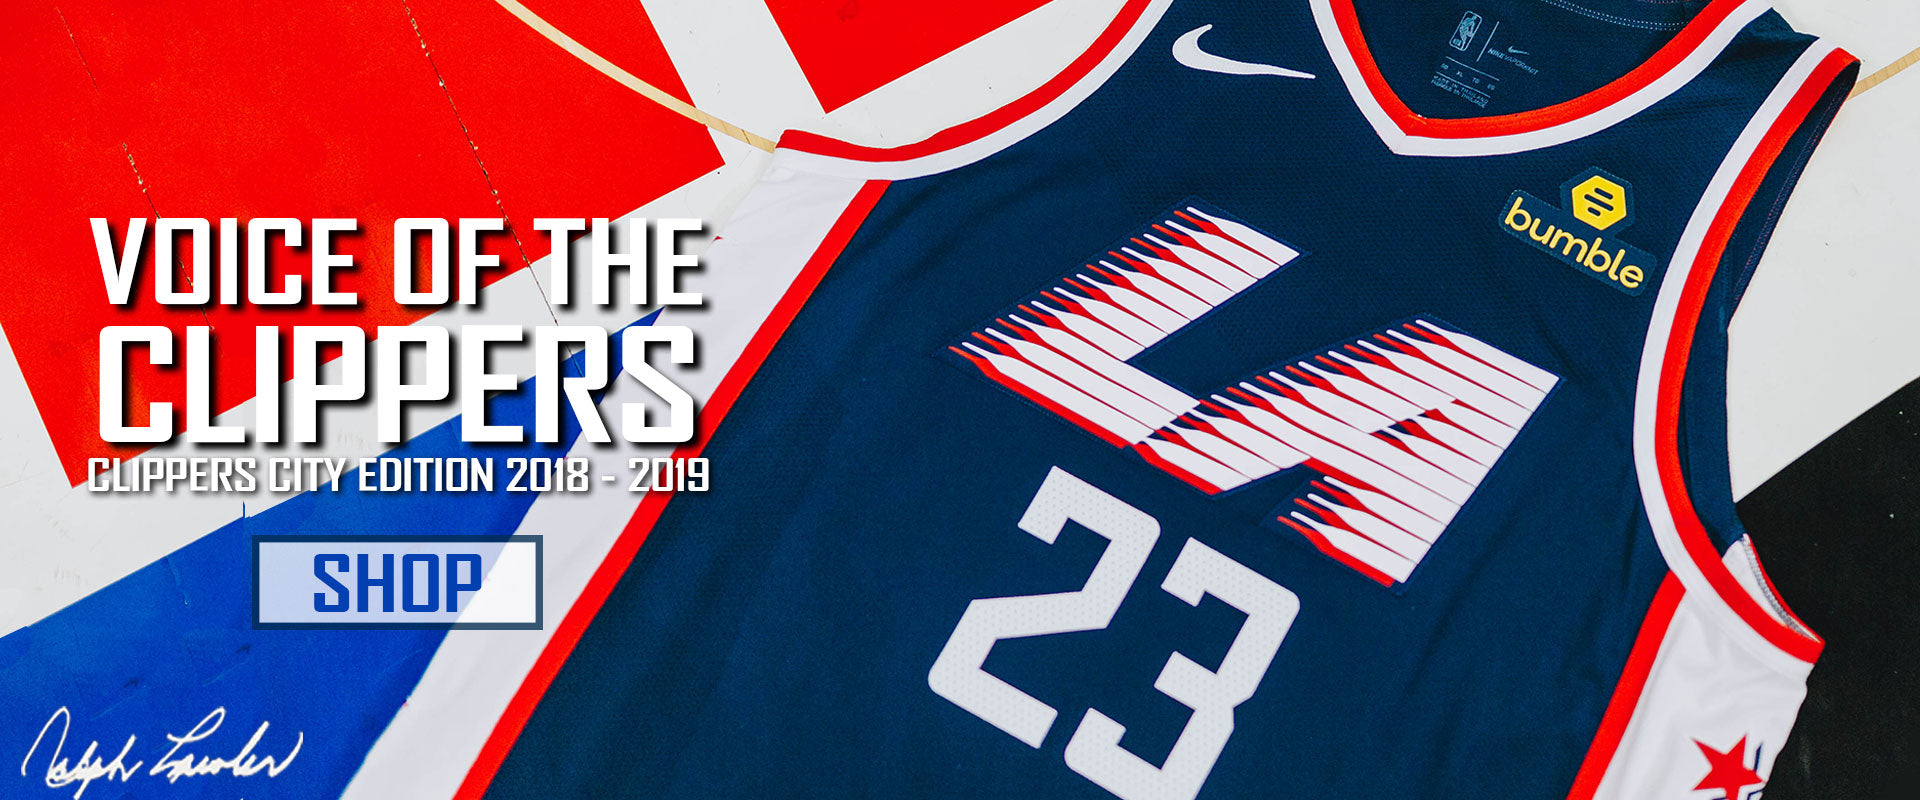 2018-19 City Edition Collection – Clippers Store 360880a00